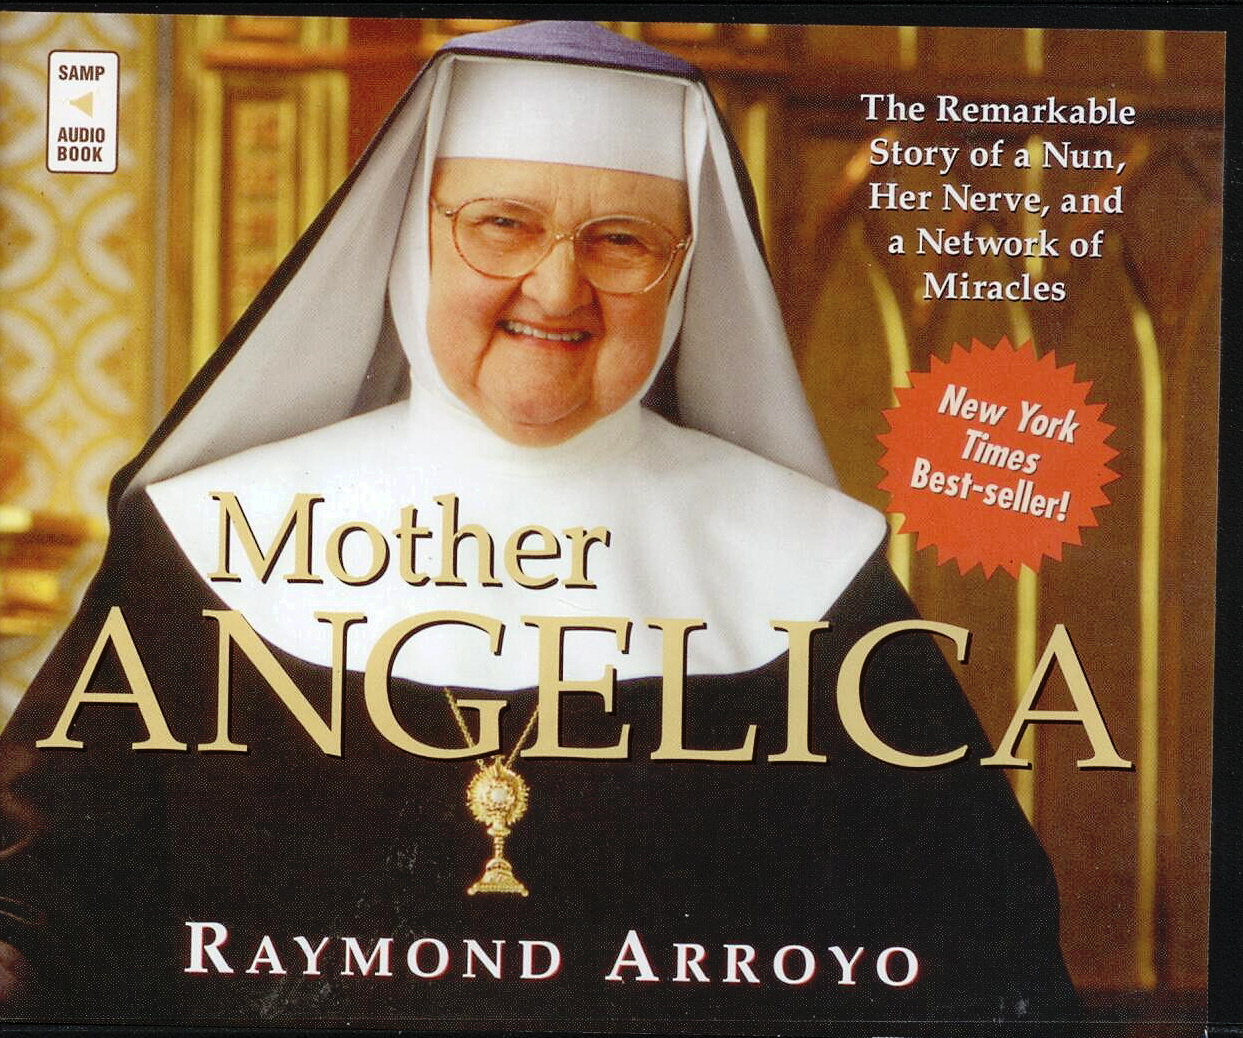 Mother Angelica, Title; Raymond Arroyo, Author/Narrator; Audio Book